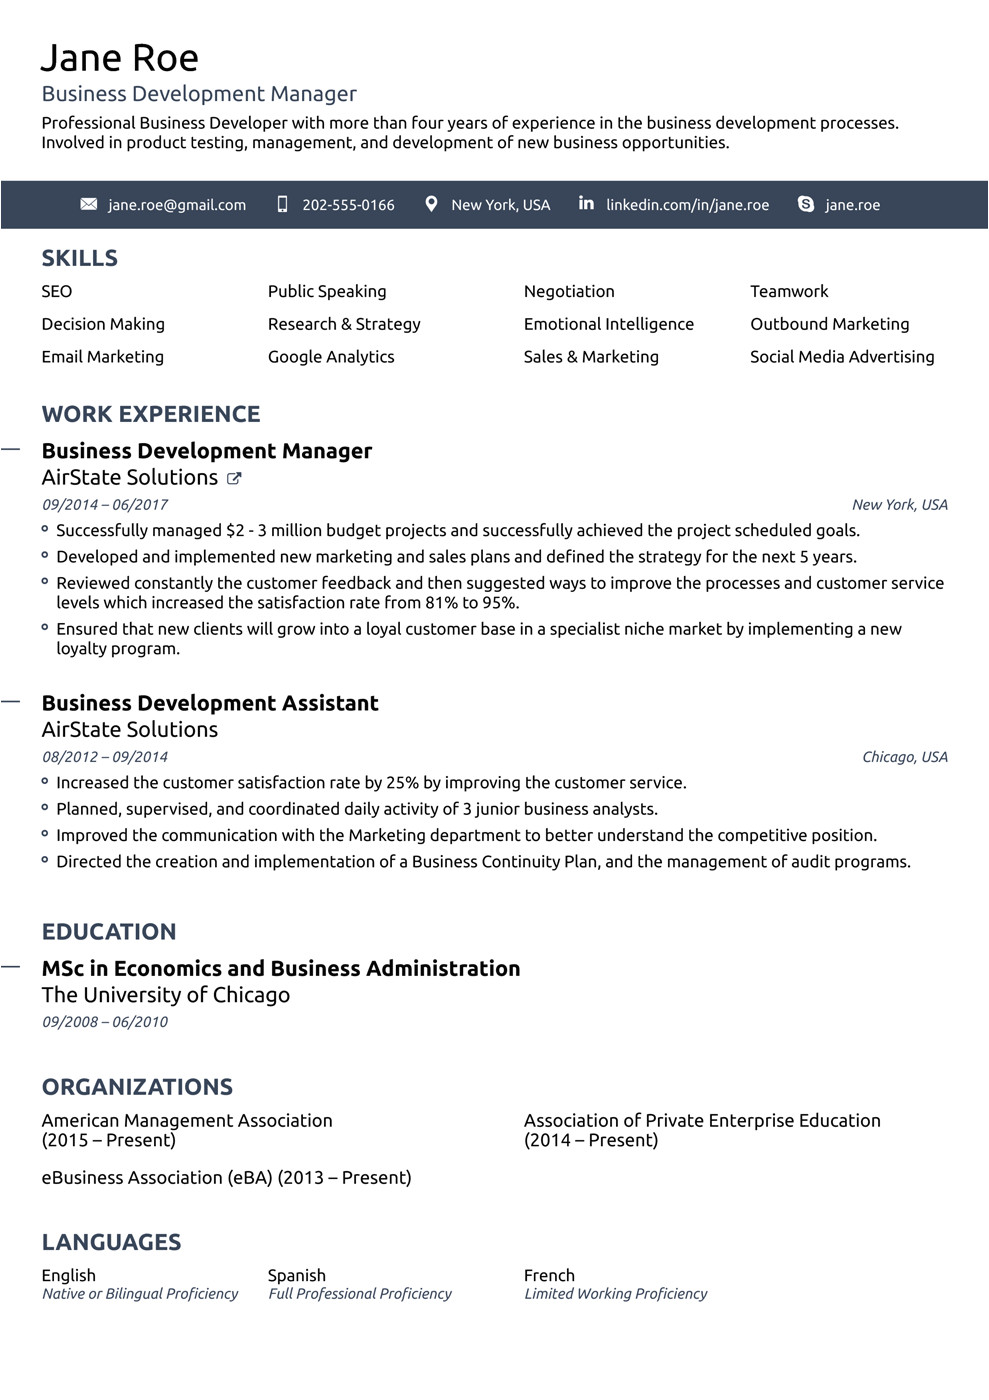 Rusume Template 2018 Professional Resume Templates as they Should Be 8